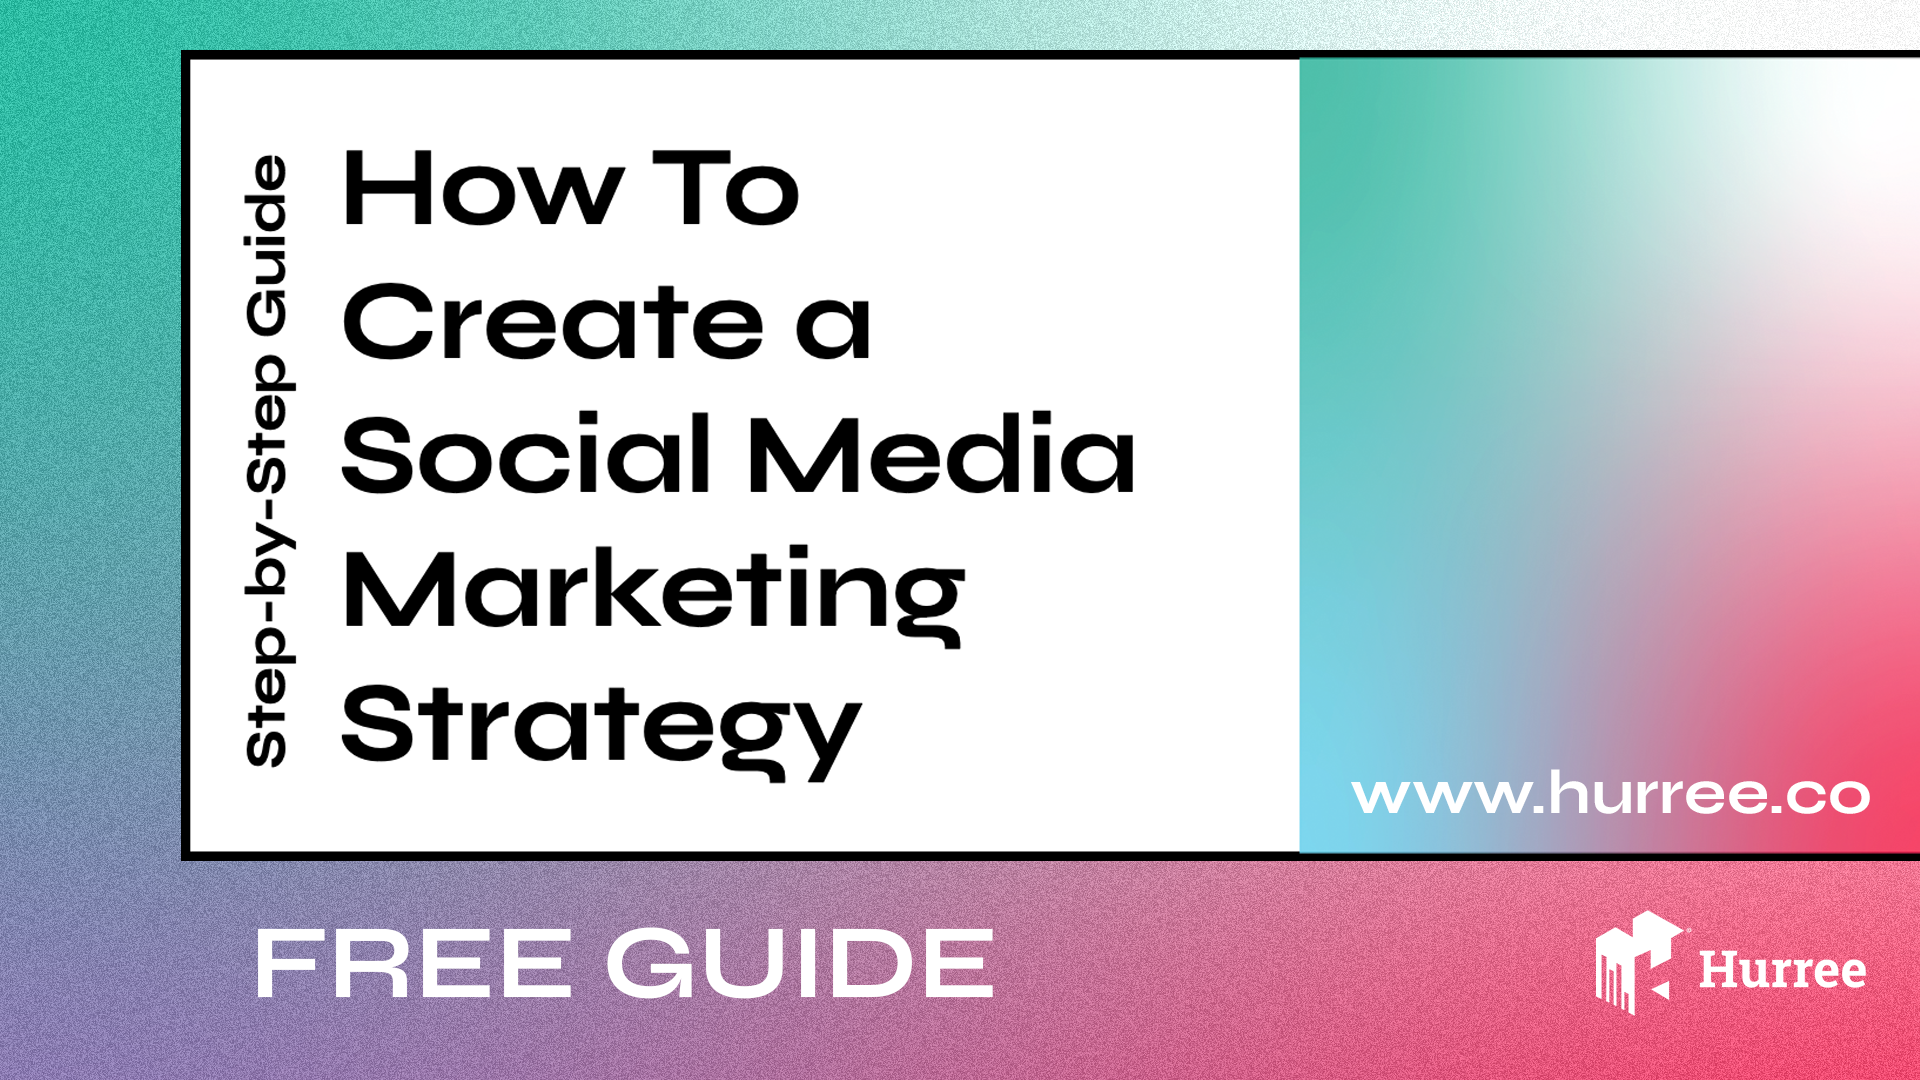 free guide how to create a social media marketing strategy